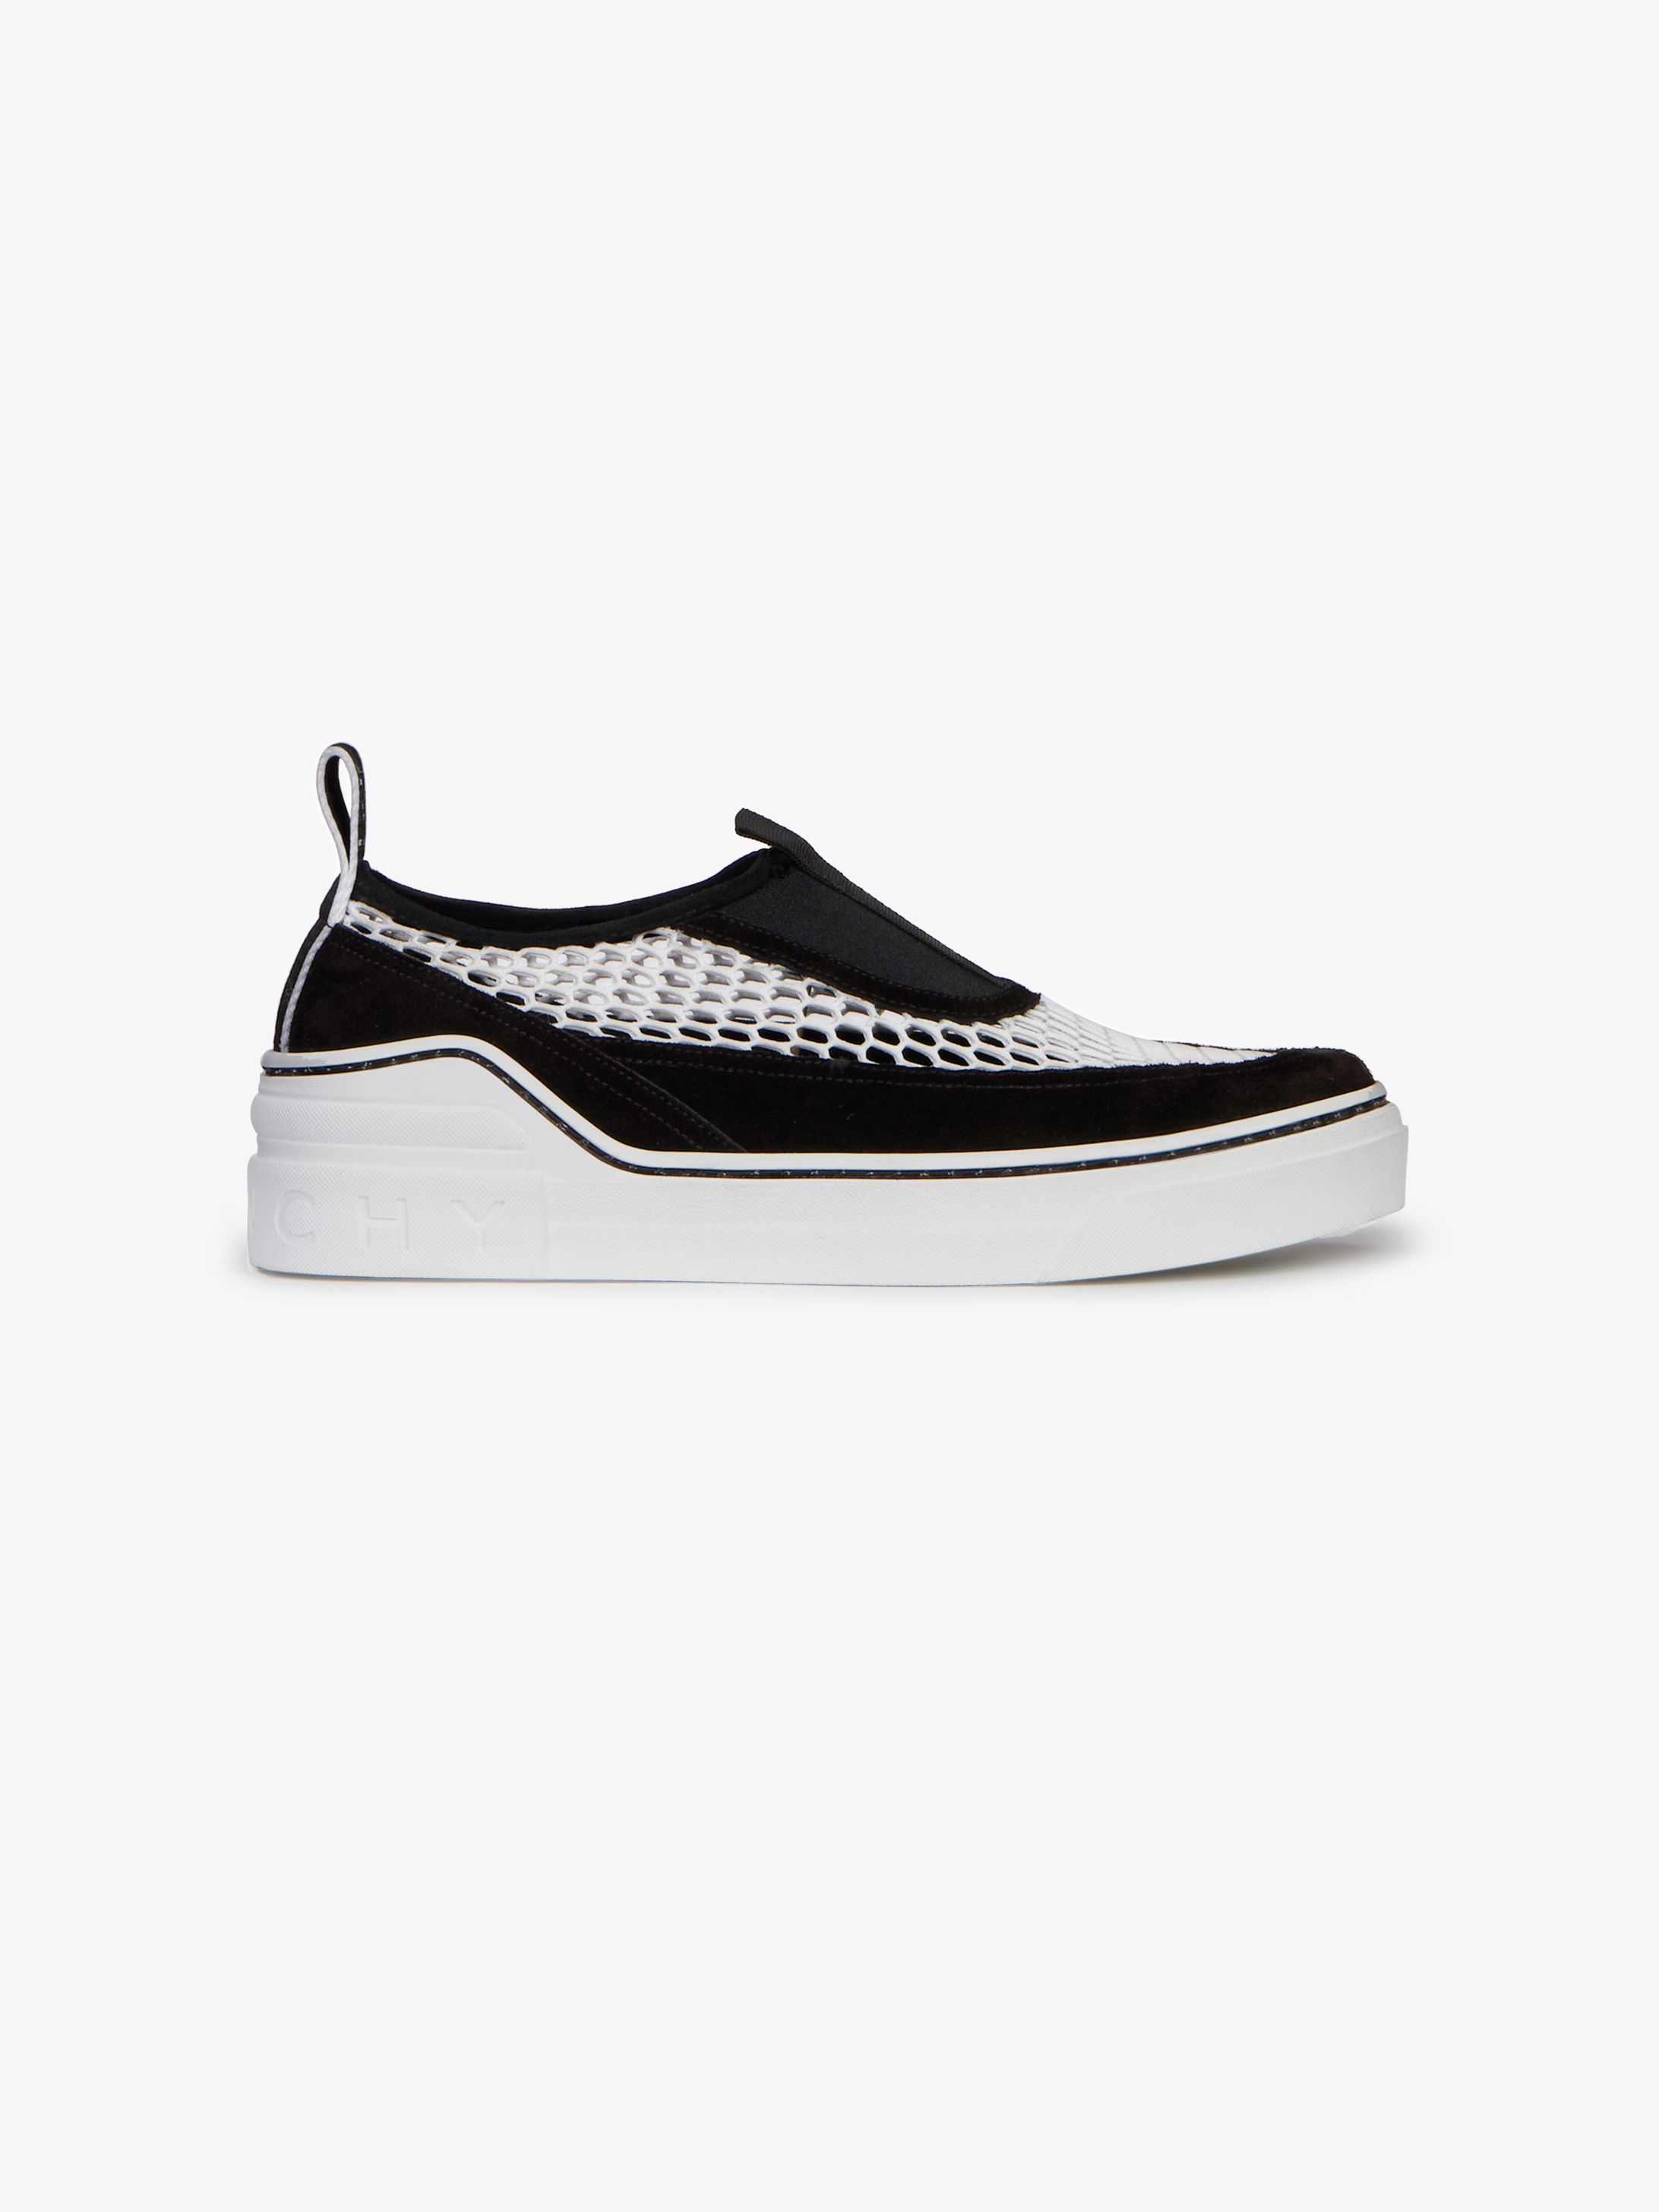 Slip-on sneakers in mesh and suede